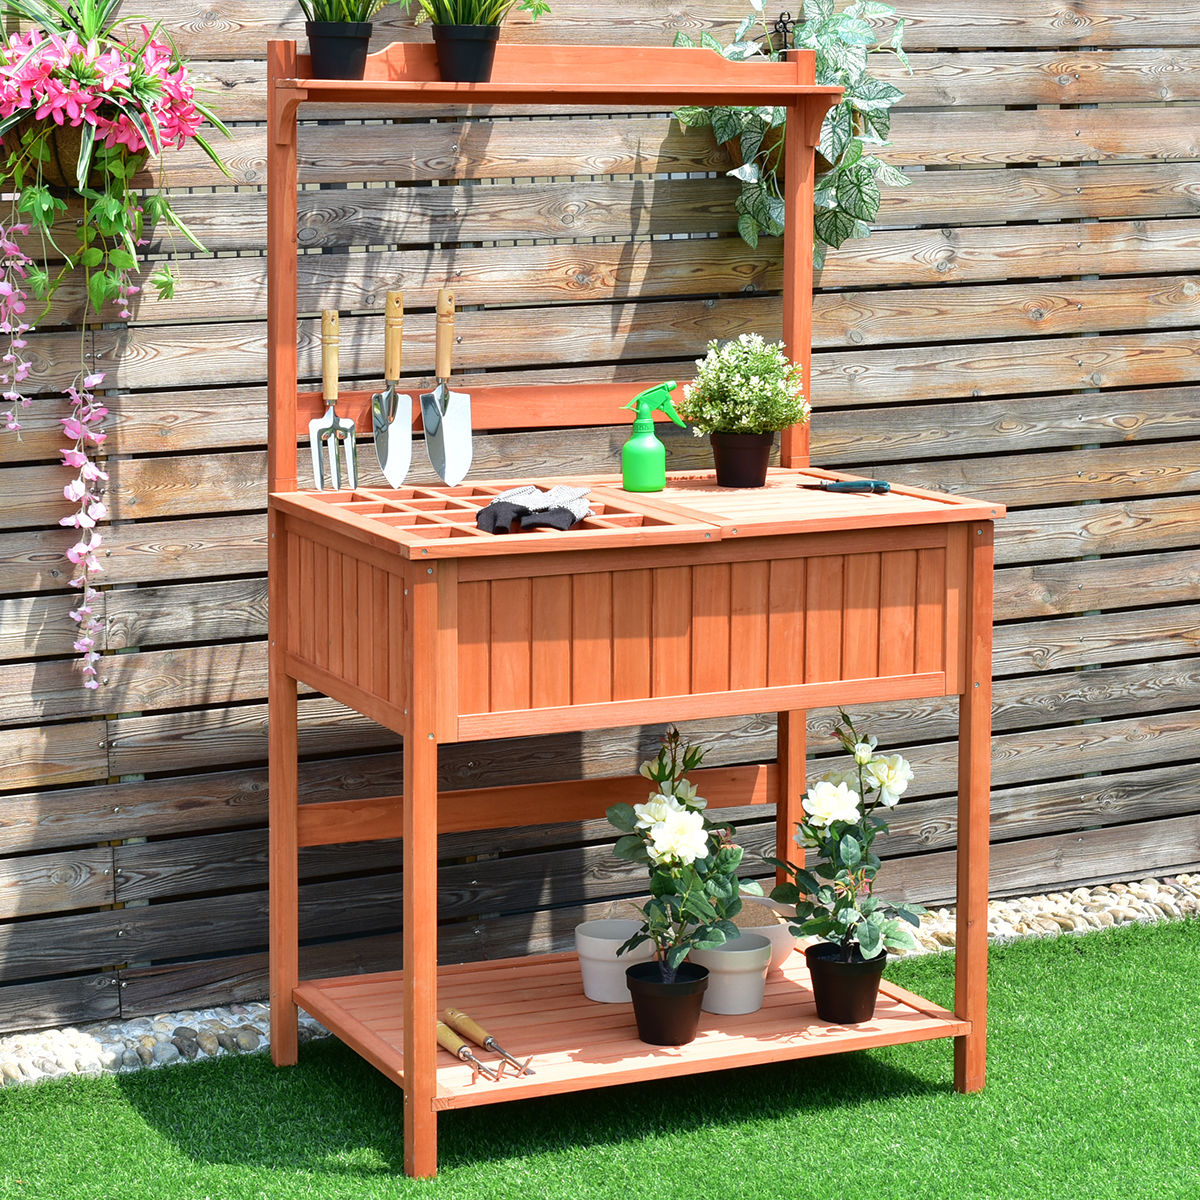 Costway Potting Work Station Table Bench Wood Garden Pati...